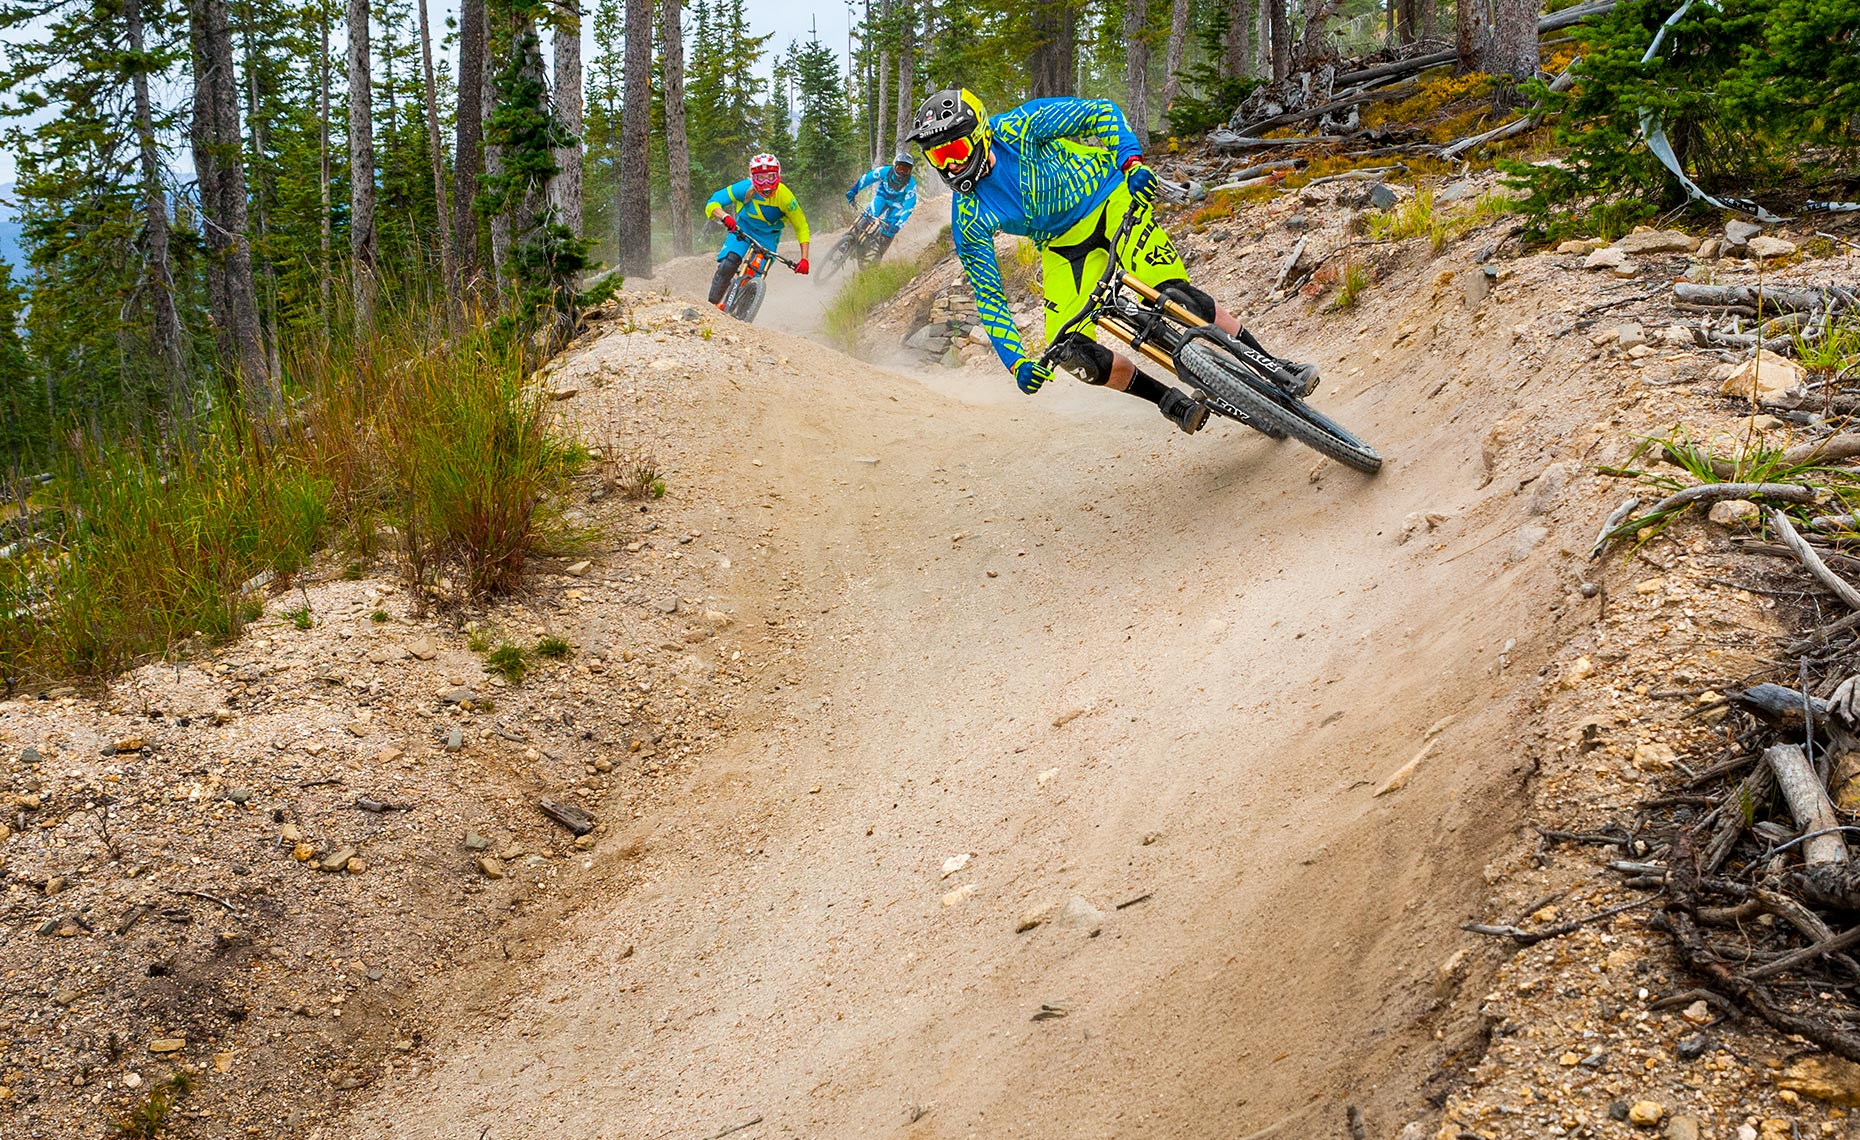 1003-Dillon-Lemarr-Trestle-Bike-Park-Chris-Wellhausen-03-RGB